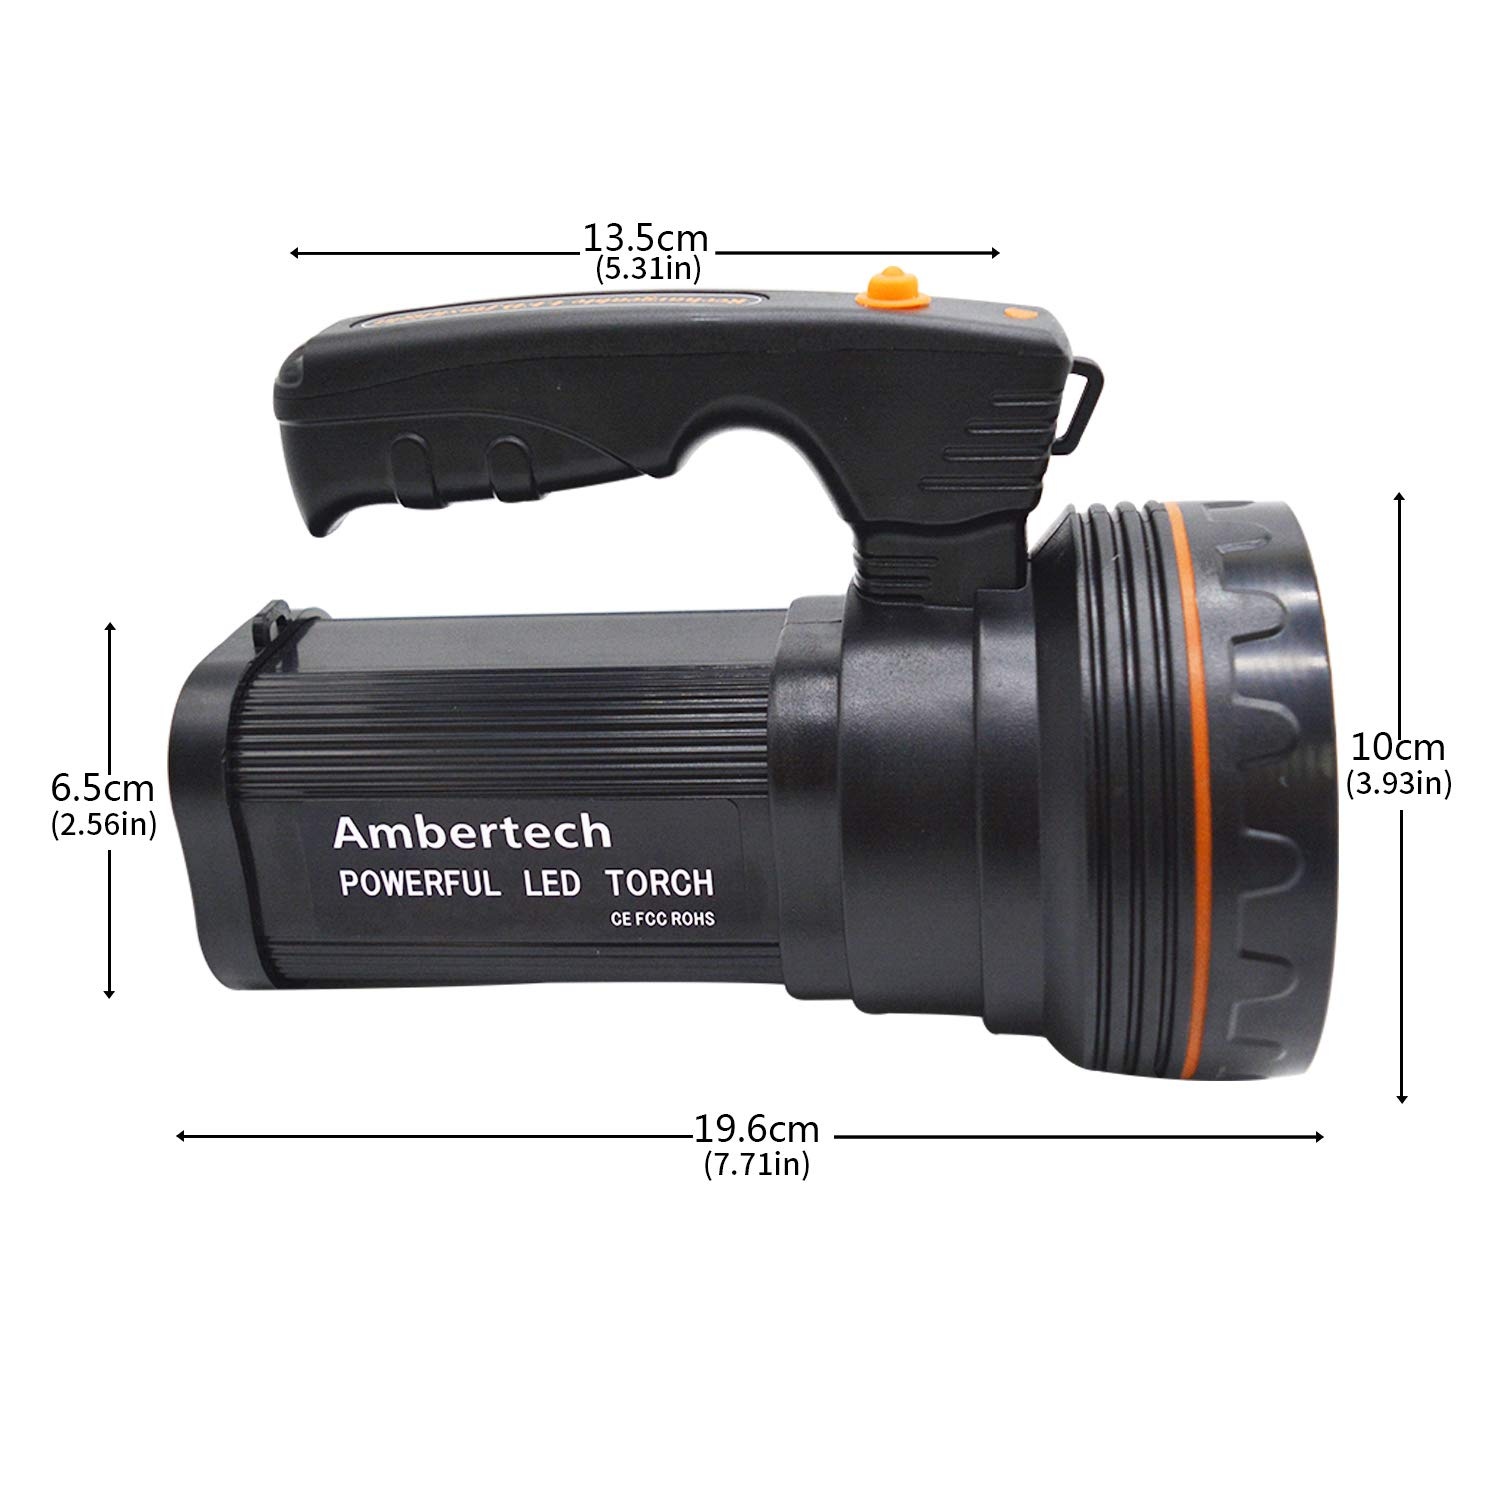 Ambertech Rechargeable 7000 Lumens Super Bright Led Searchlight How To Make A Flashlight Bulb 8211 For 2 15 Volt Batterie Spotlight Torch Lantern With Sharp Light Diy Tools